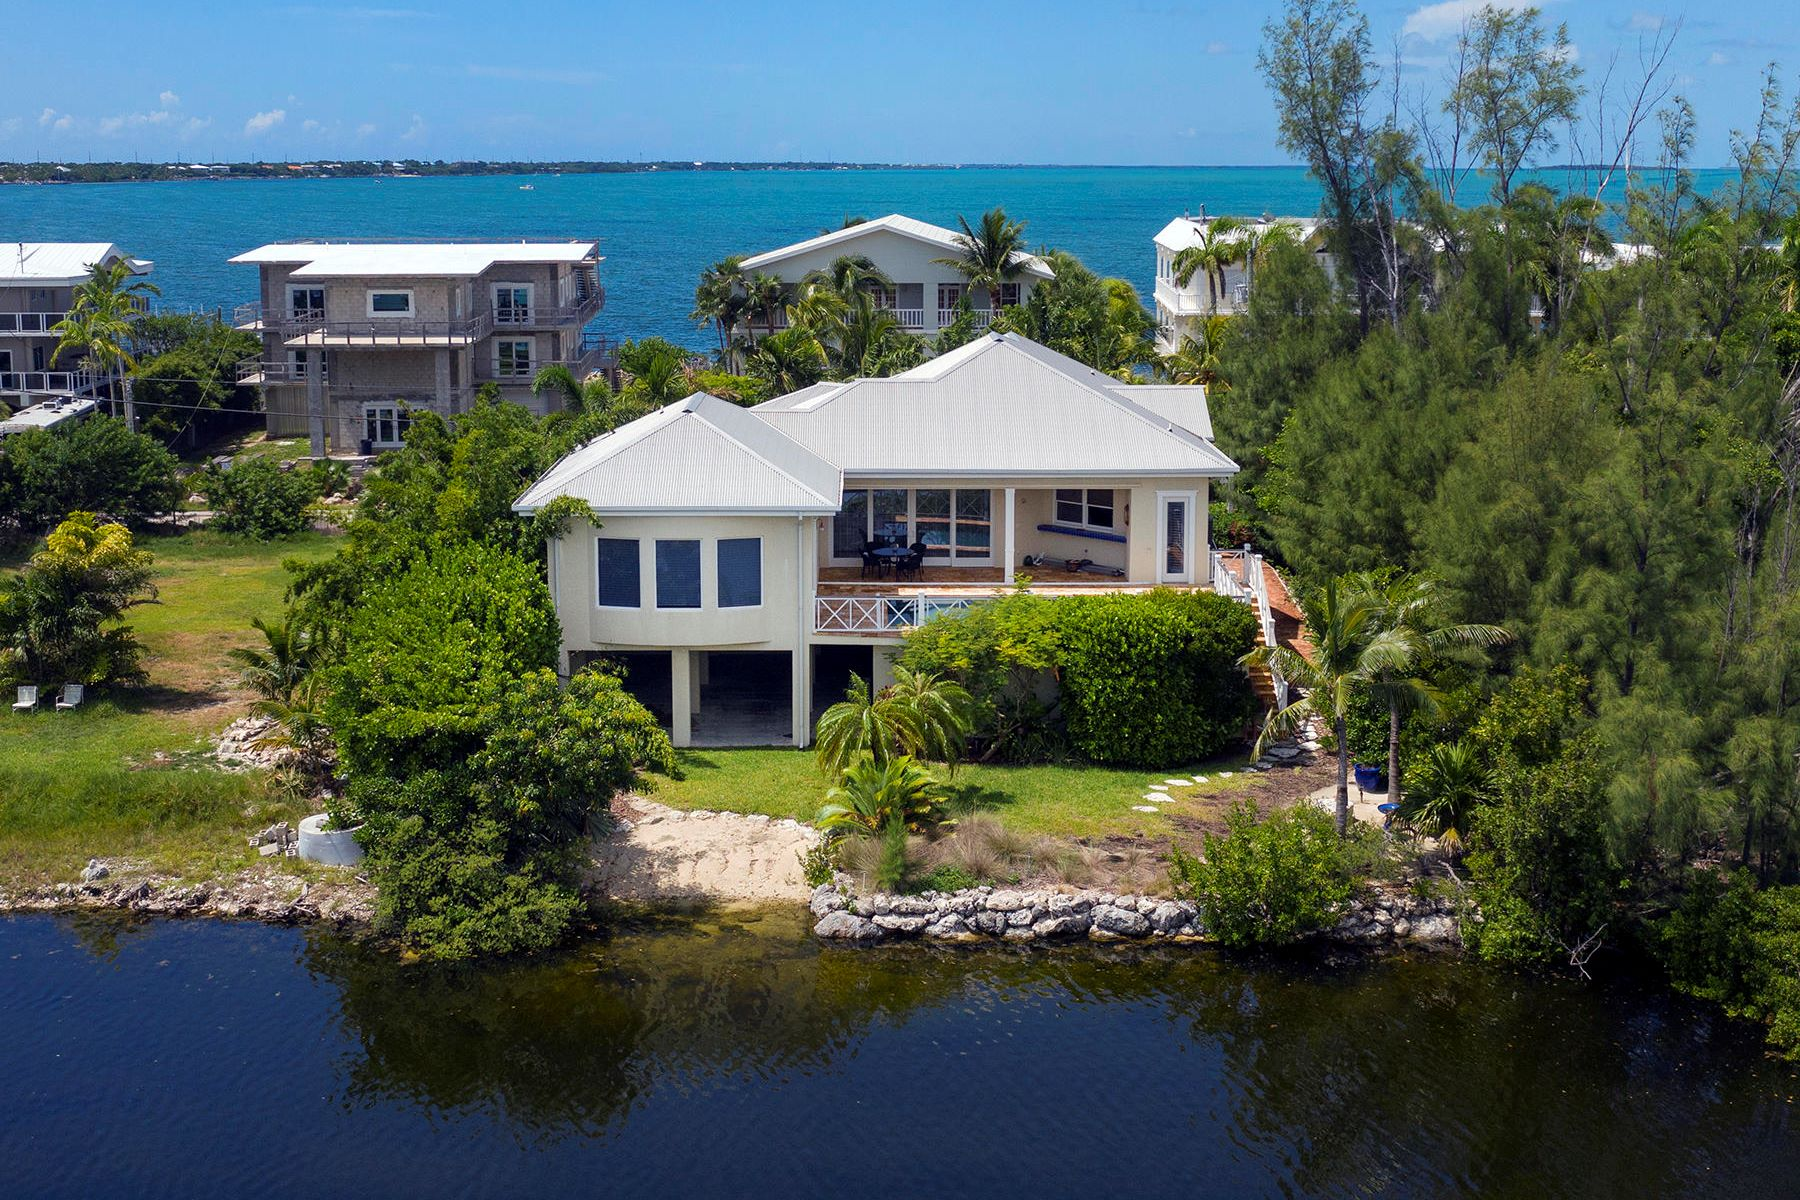 Property for Sale at 50 N Bounty Lane, Key Largo, FL 50 N Bounty Lane Key Largo, Florida 33037 United States